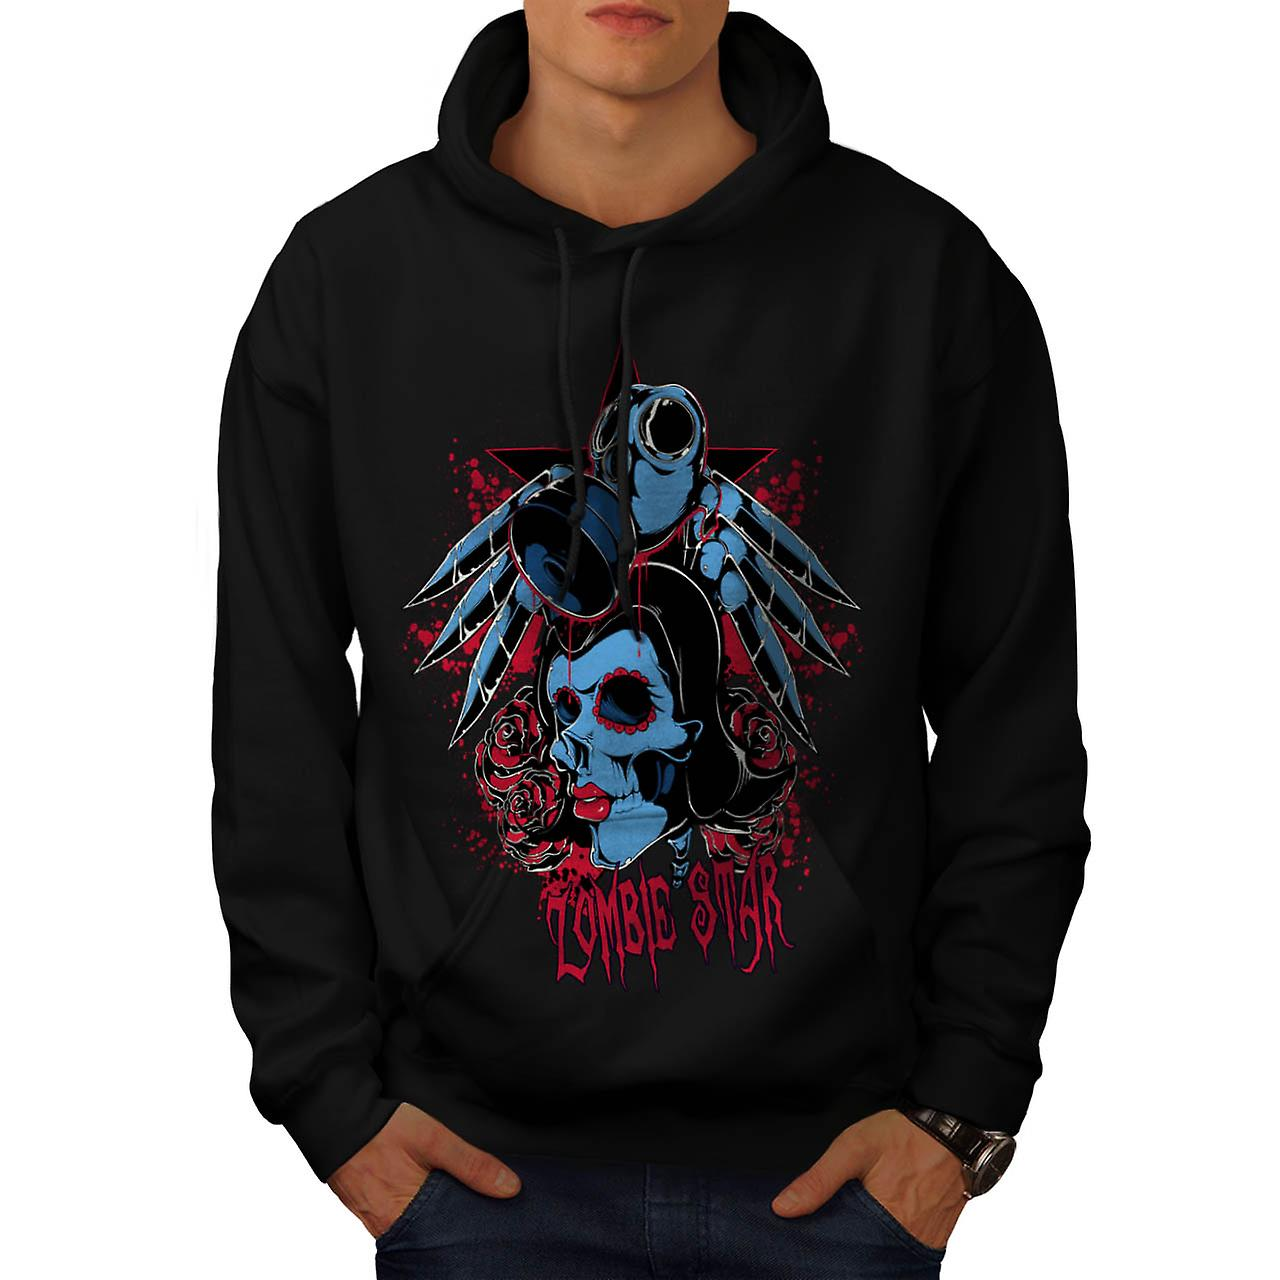 Evil Zombie Star Rise Nightmare Men Black Hoodie | Wellcoda